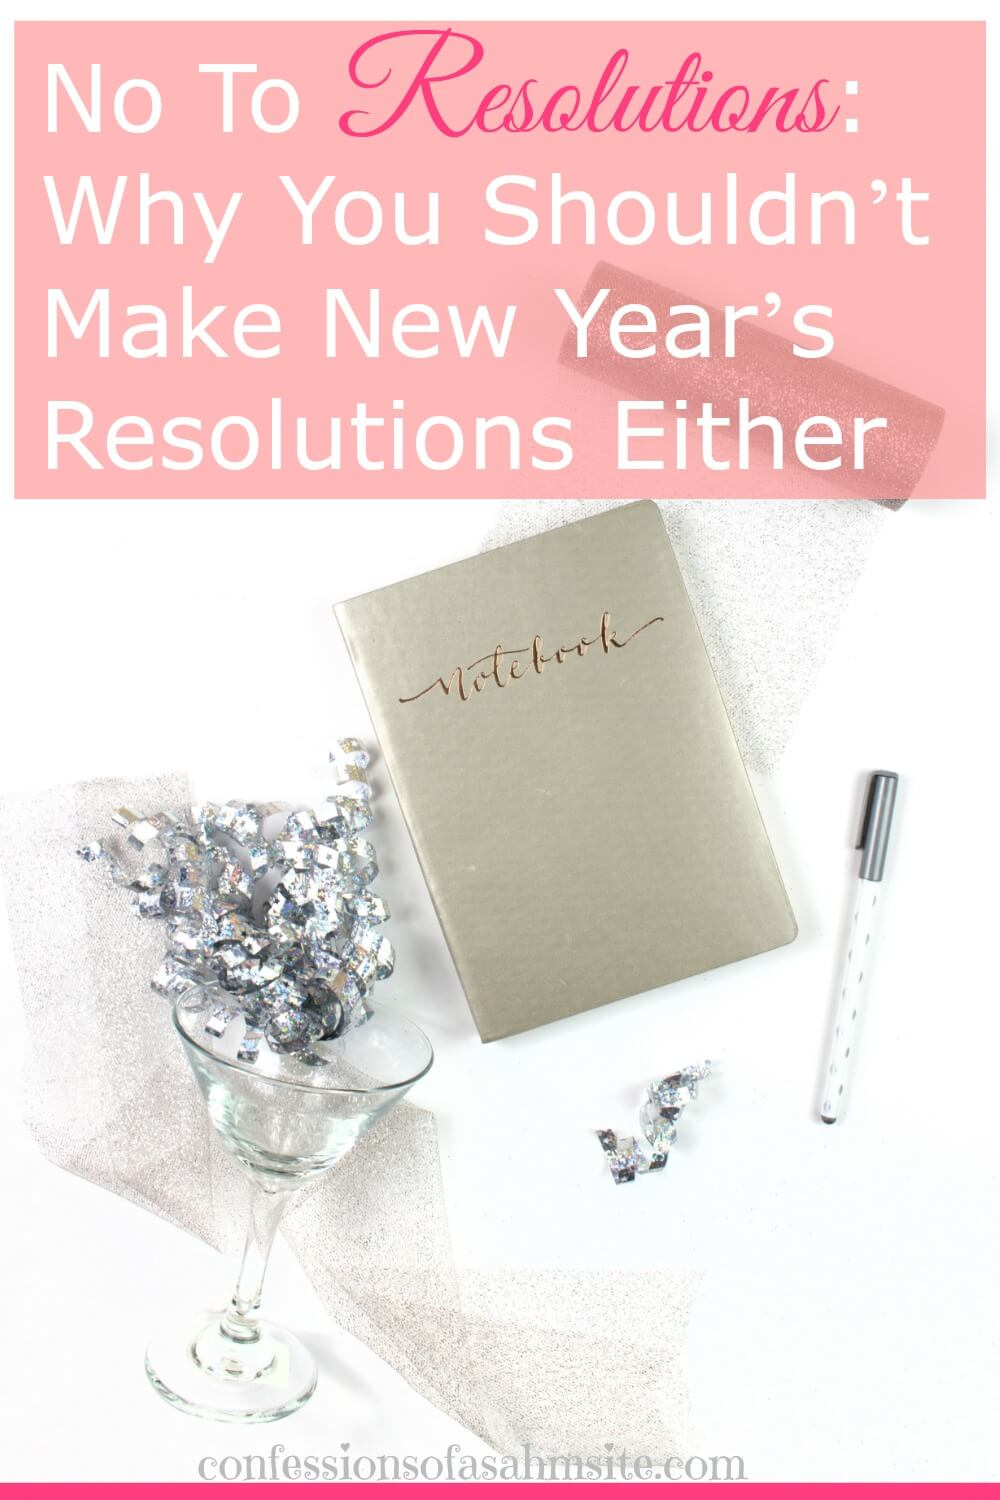 No To Resolutions: Why You Shouldn't Make New Year's Resolutions Either